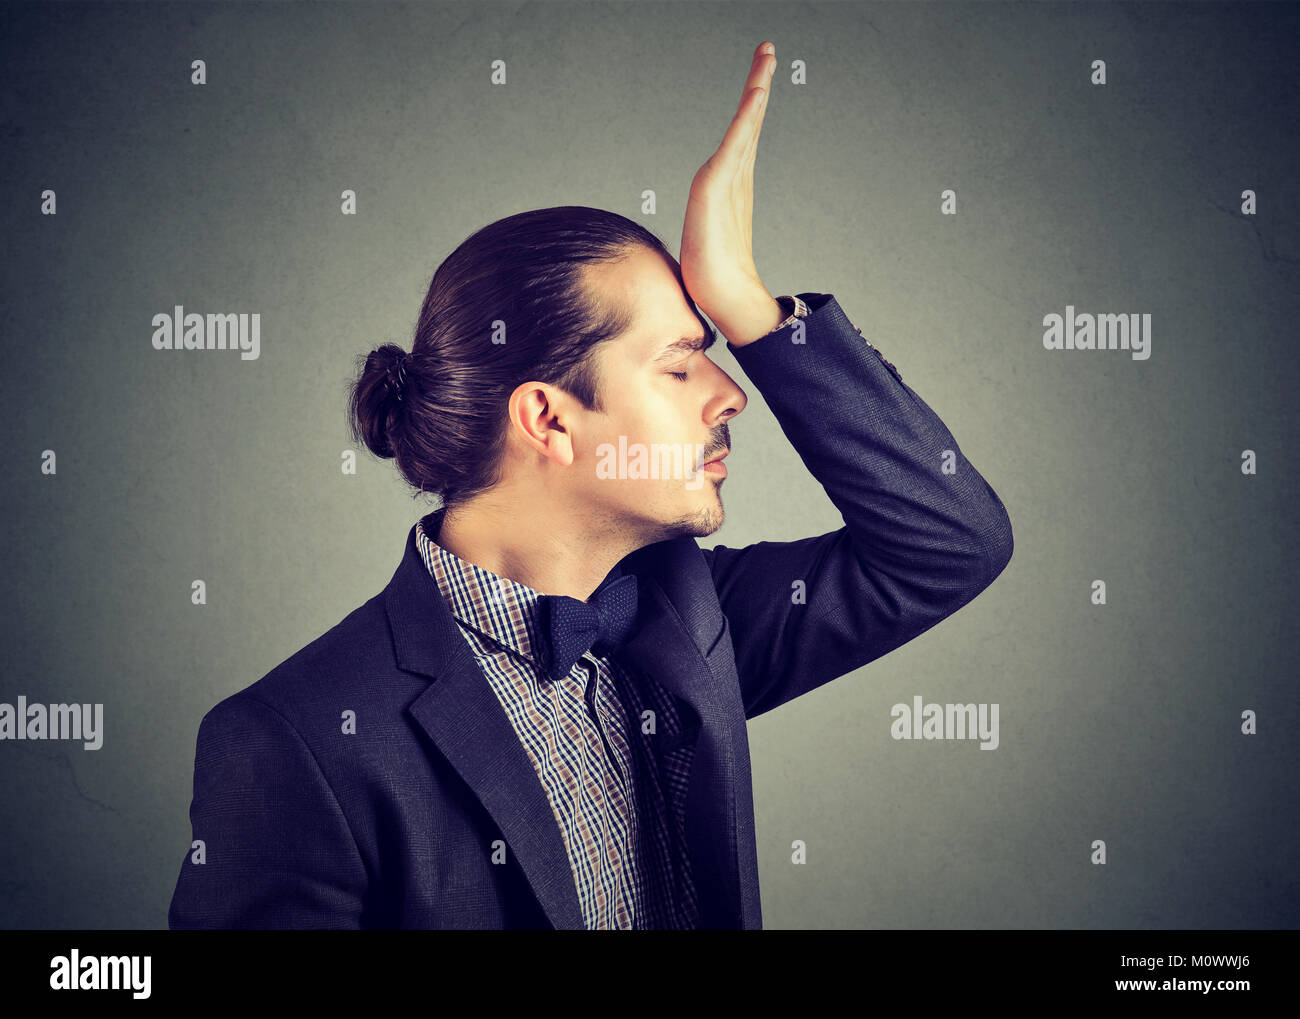 Young elegant man slapping forehead upset with foolish mistake while posing on gray. - Stock Image